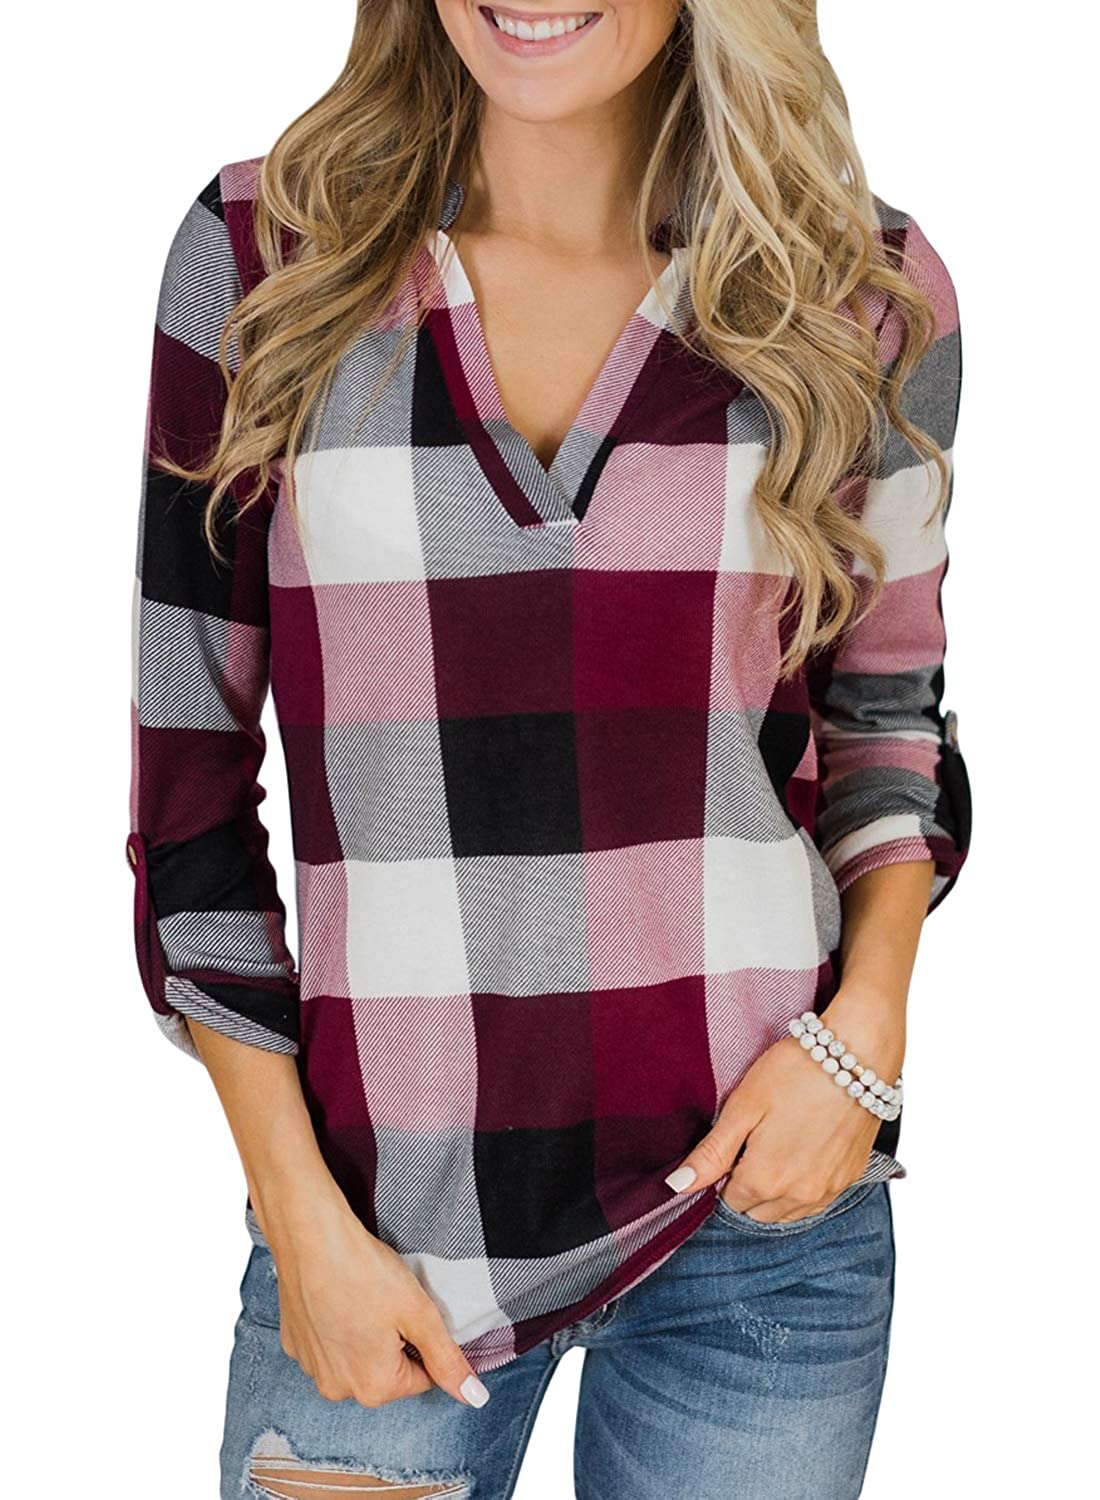 Astylish Women Casual Plaid V Neck 3 4 Long Sleeve Blouses Tops Shirts AH250454